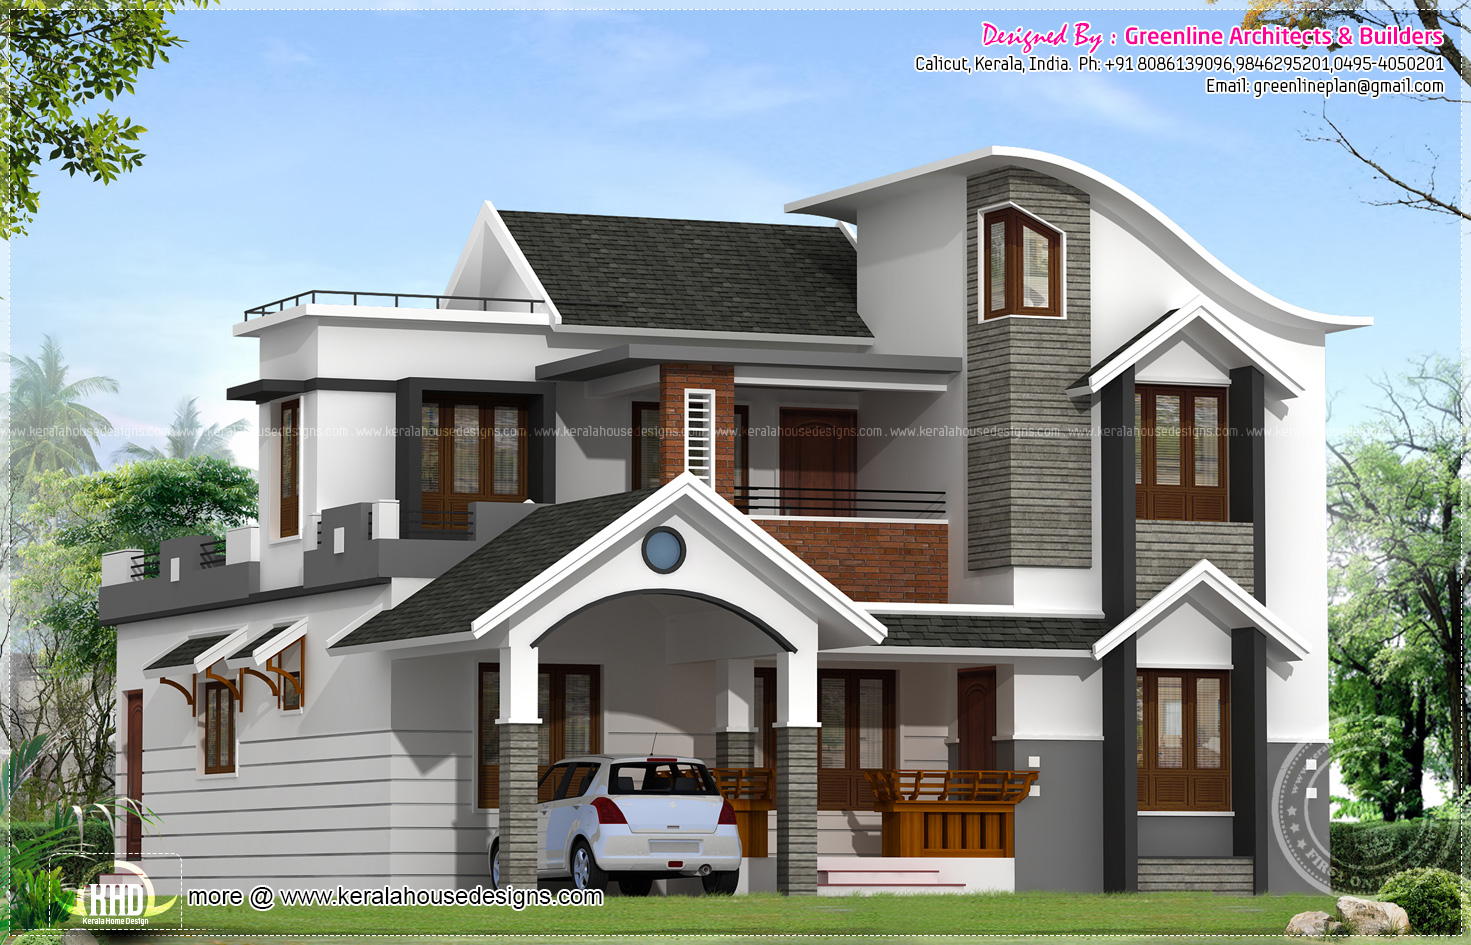 May 2013 kerala home design and floor plans for Small contemporary house plans in kerala